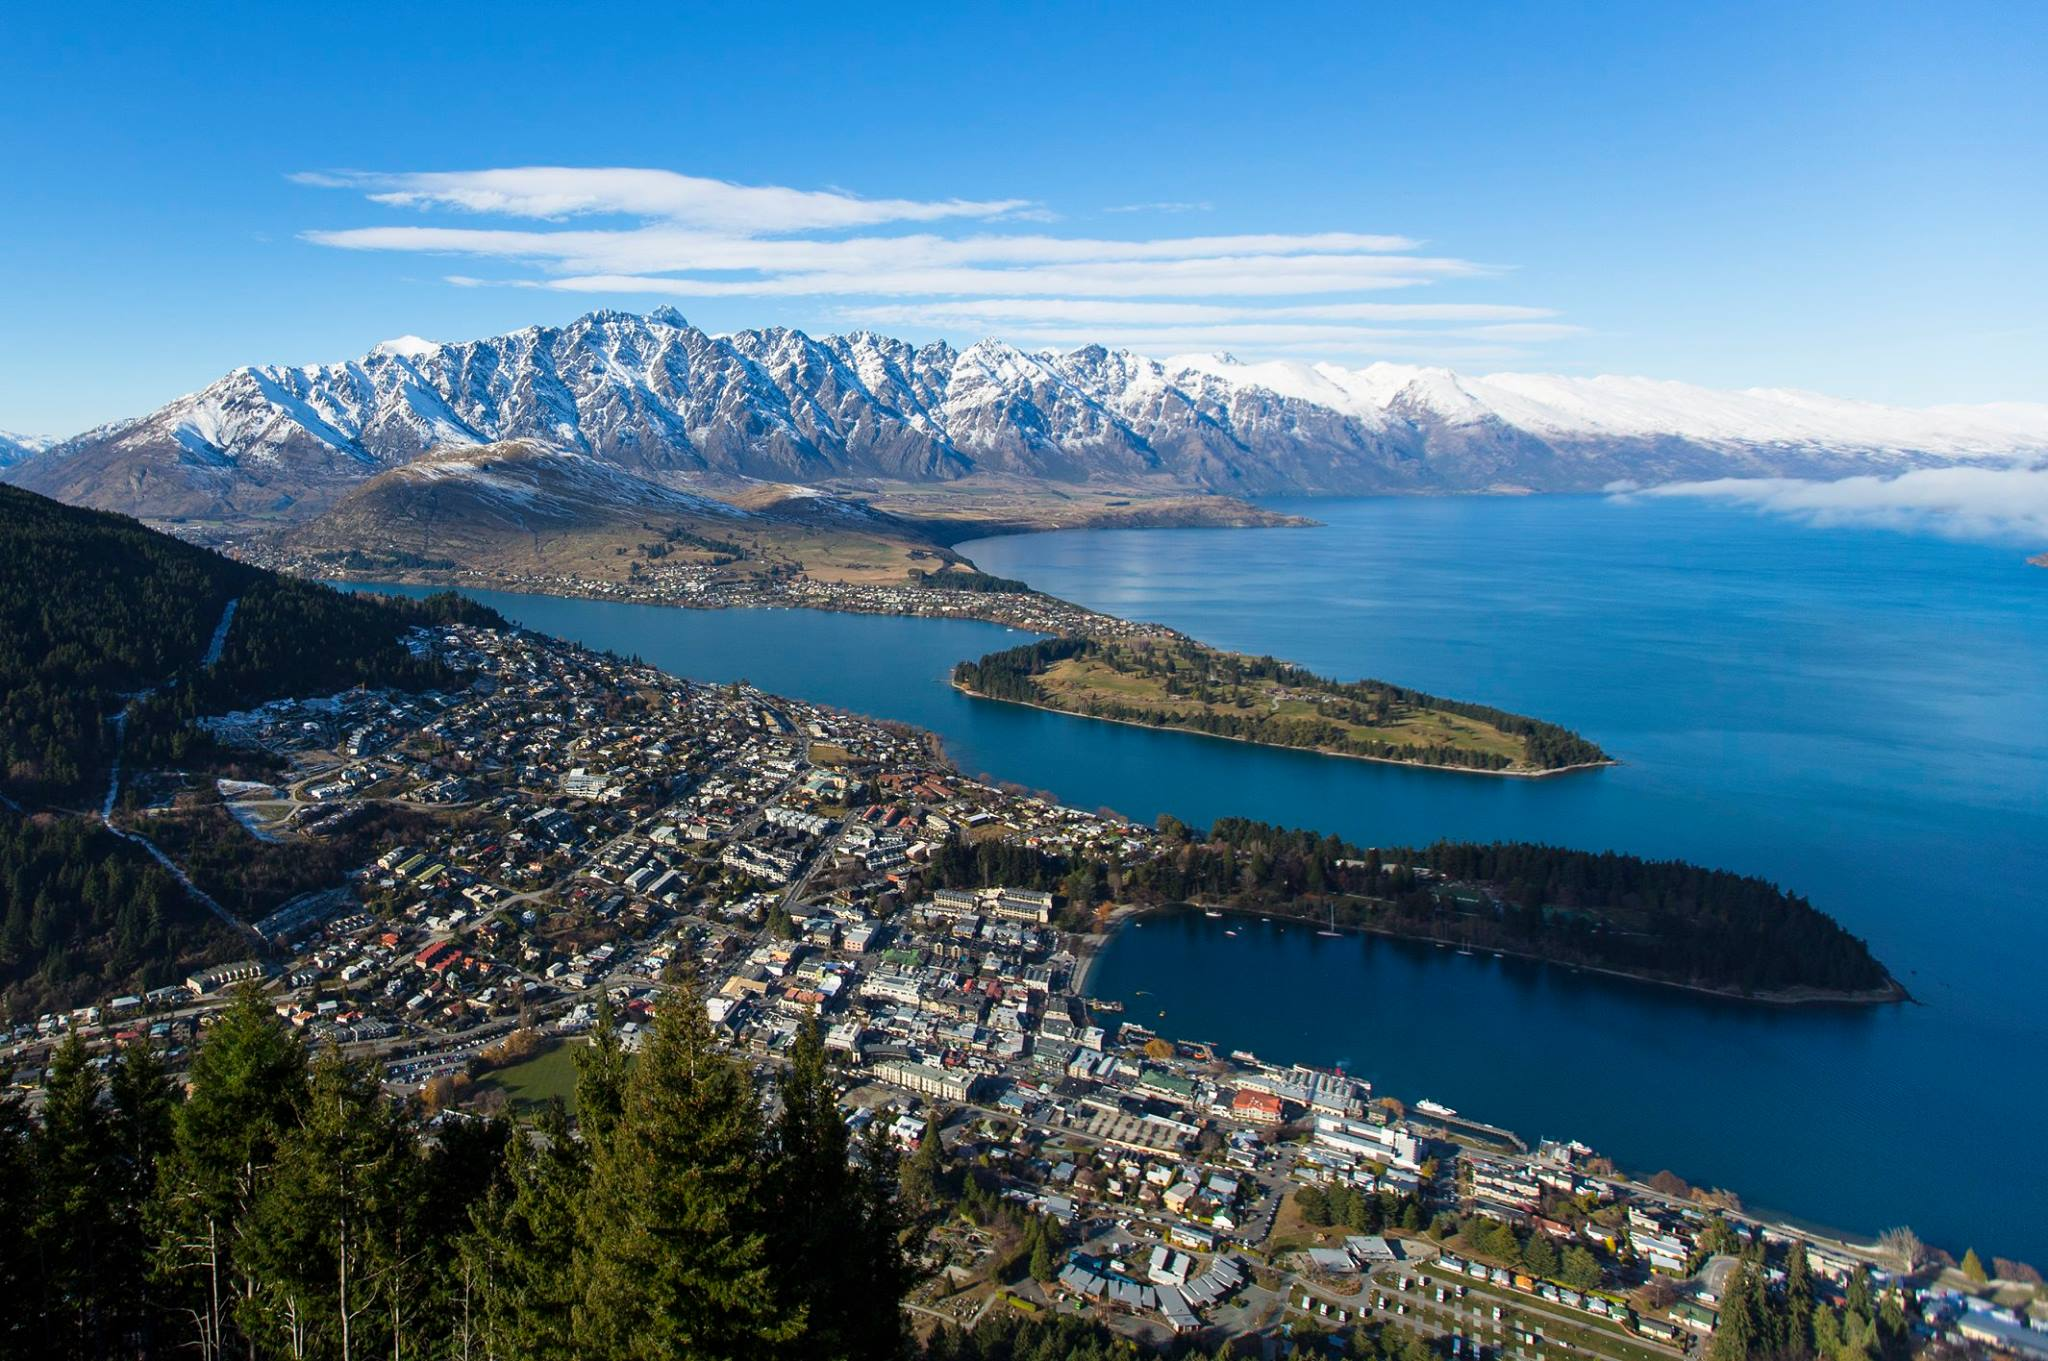 Queenstown has a unique and spectacular setting, surrounded by The Remarkables